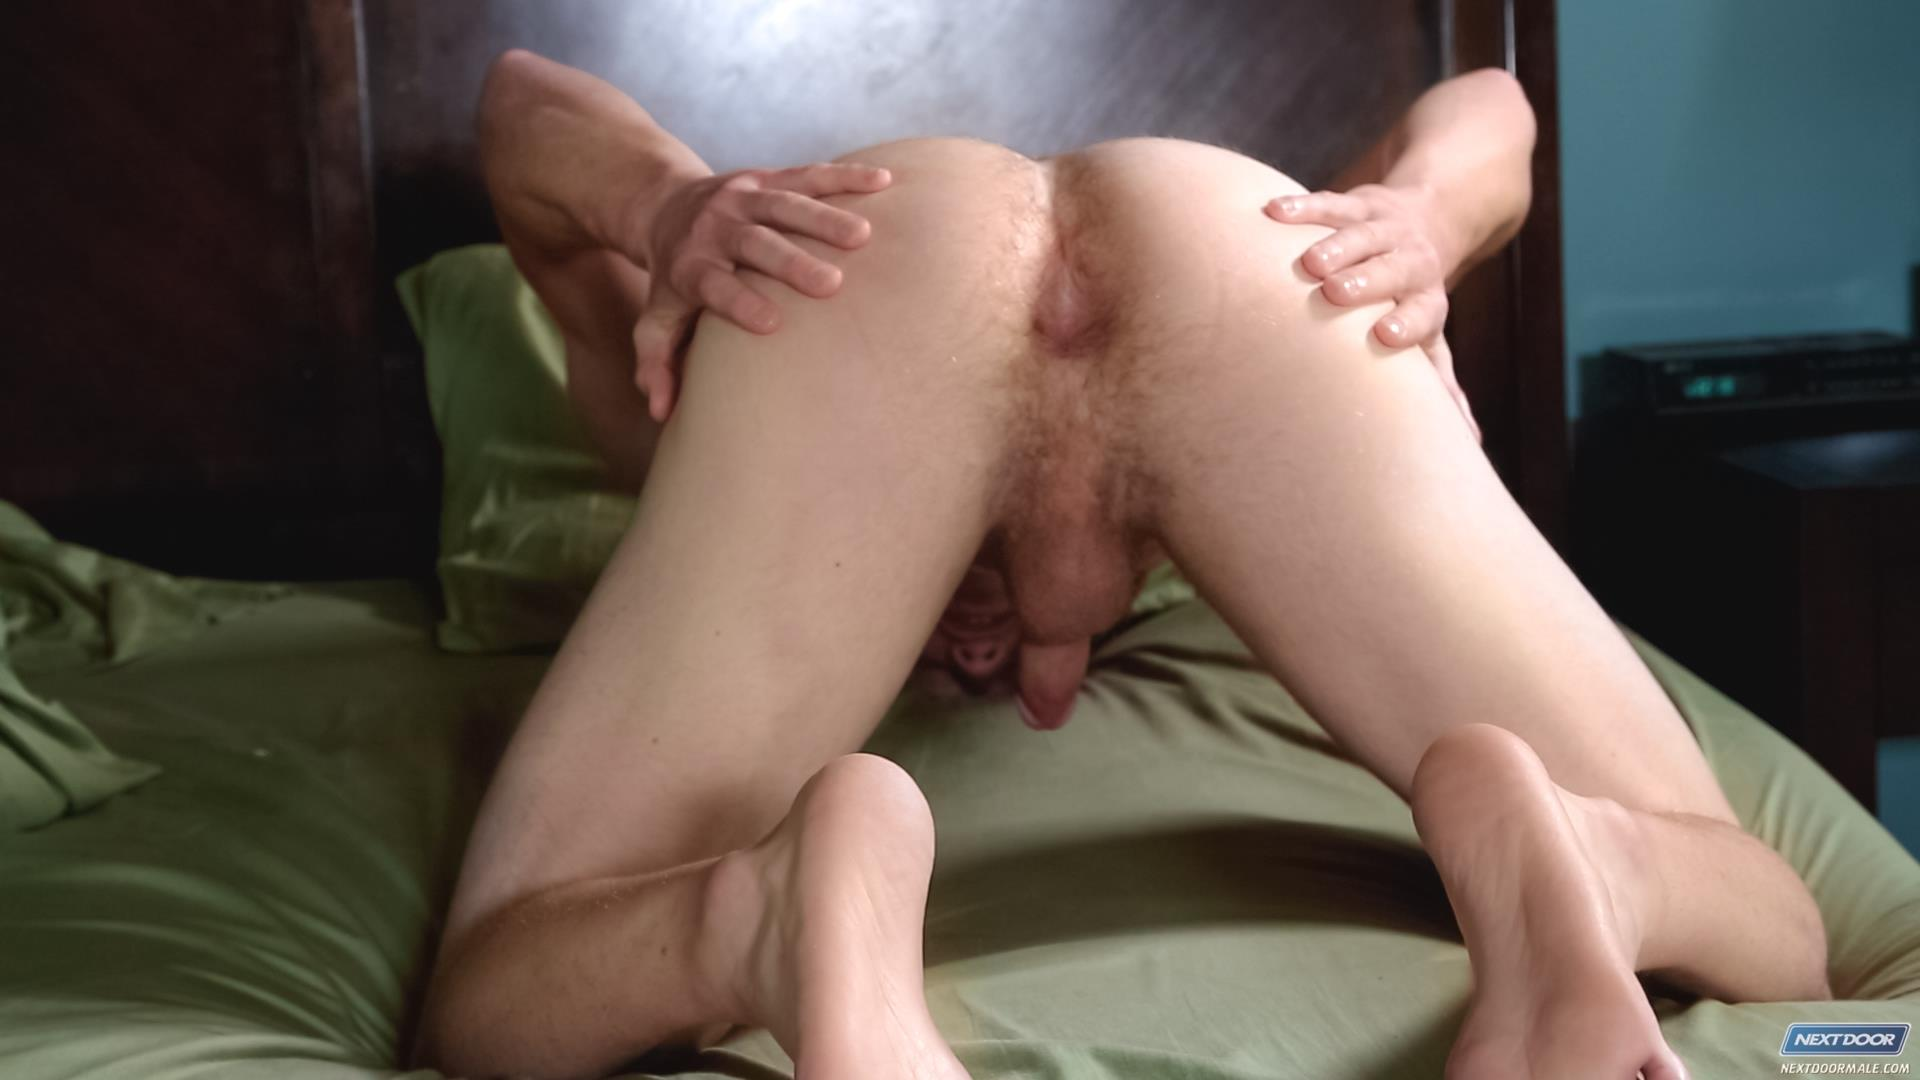 Next Door Male Stryker Texas Redhead Jerking His Cock Amateur Gay Porn 09 Texas Redneck Redhead Country Boy Jerking His Ginger Cock